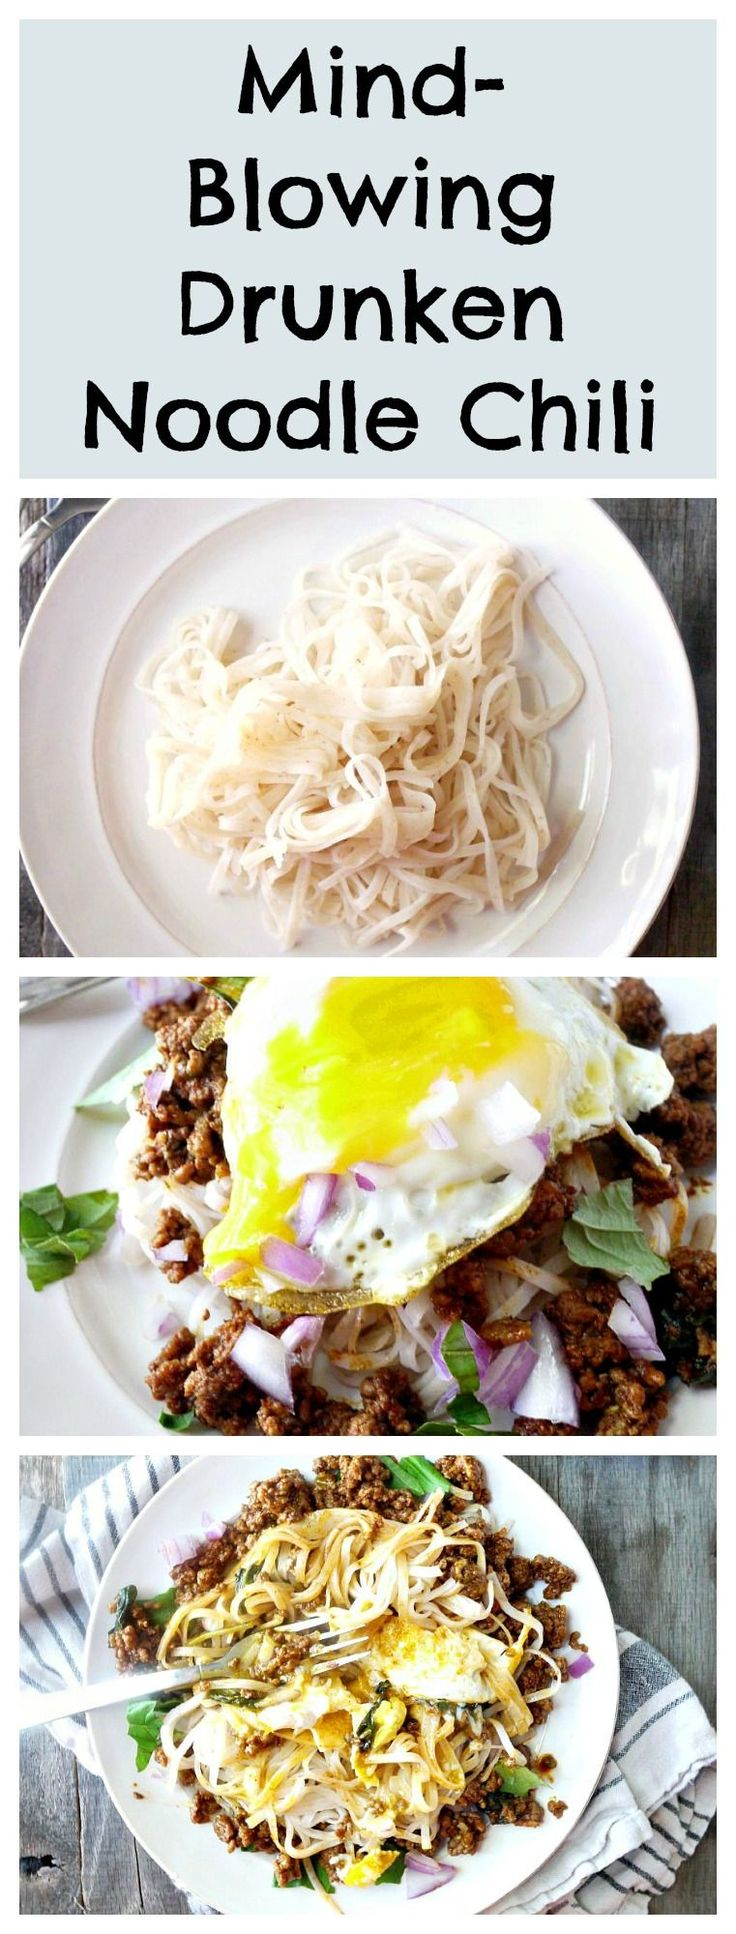 I love chili but I get bored of the same chili recipes each fall. This recipe will blow your mind. It combines the flavor of drunken noodles with classic chili. The runny fried egg on top takes it over the edge! #chili